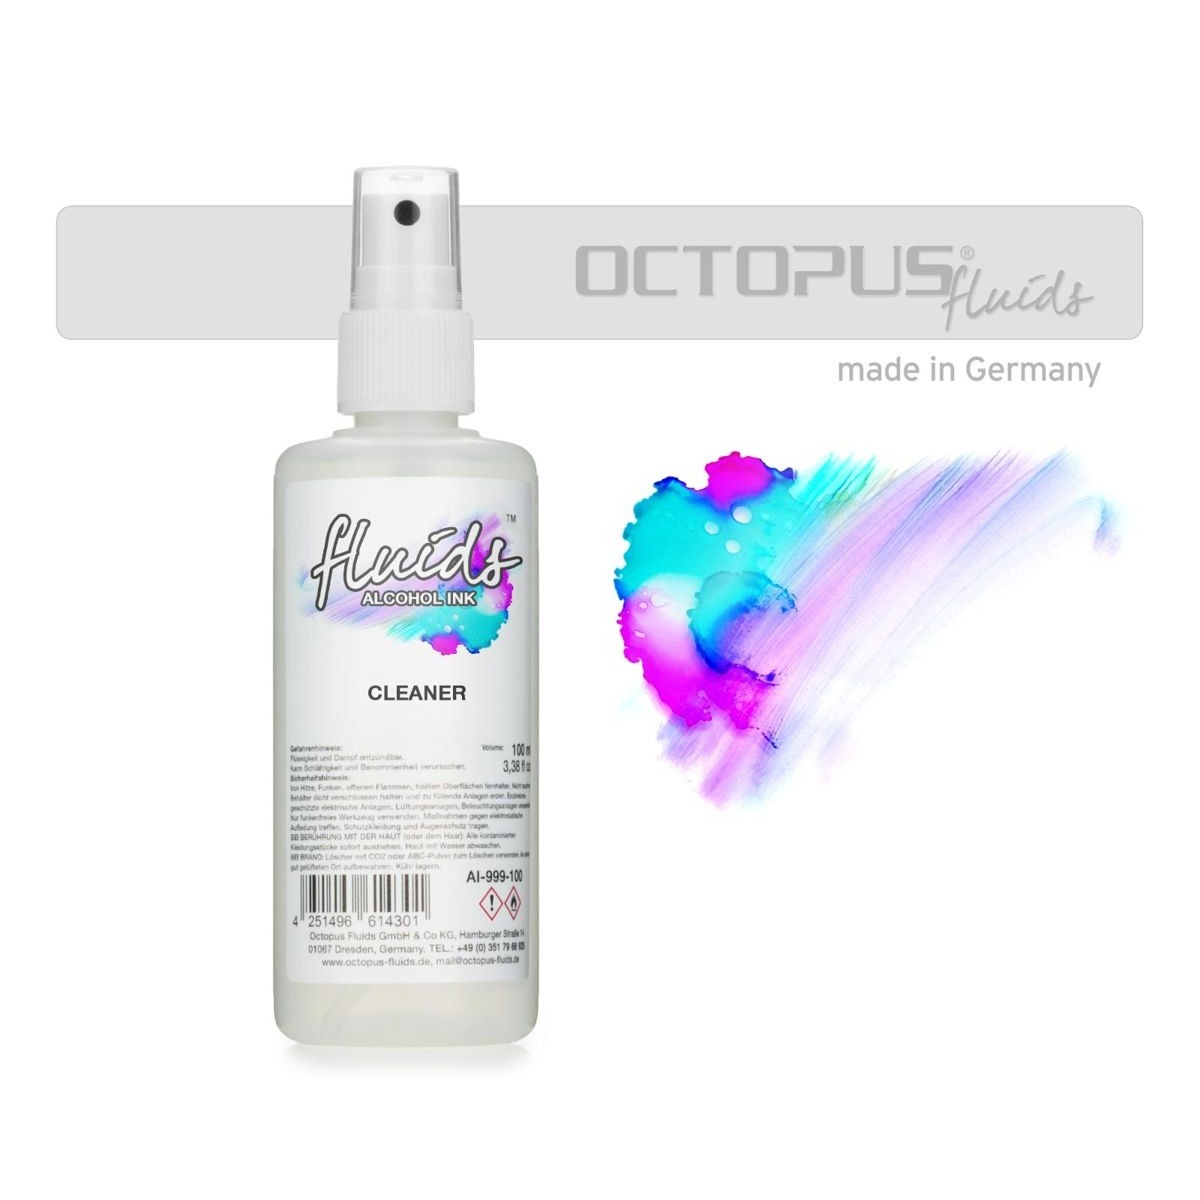 Octopus Fluids, Alcohol Ink Cleaner, 100 ml